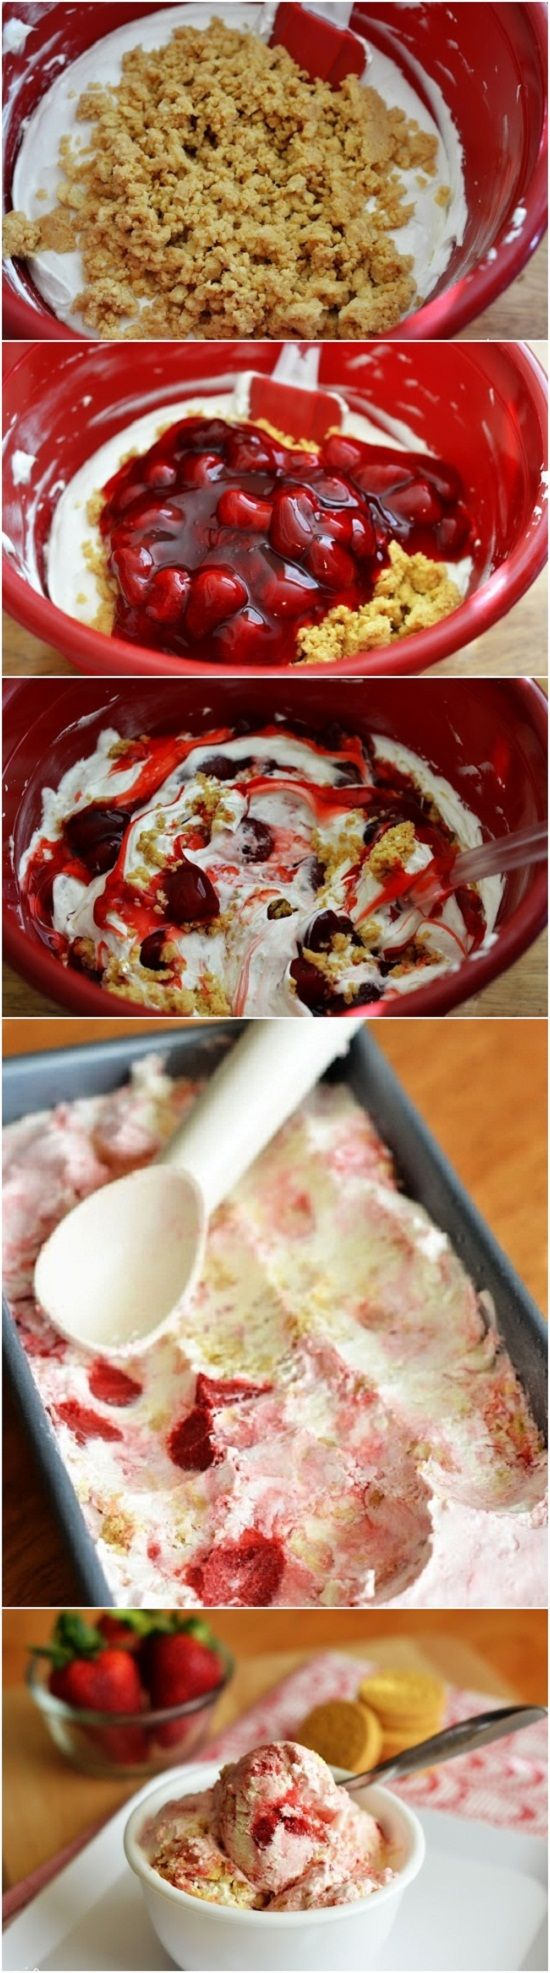 Easy Strawberry Cheesecake Ice Cream